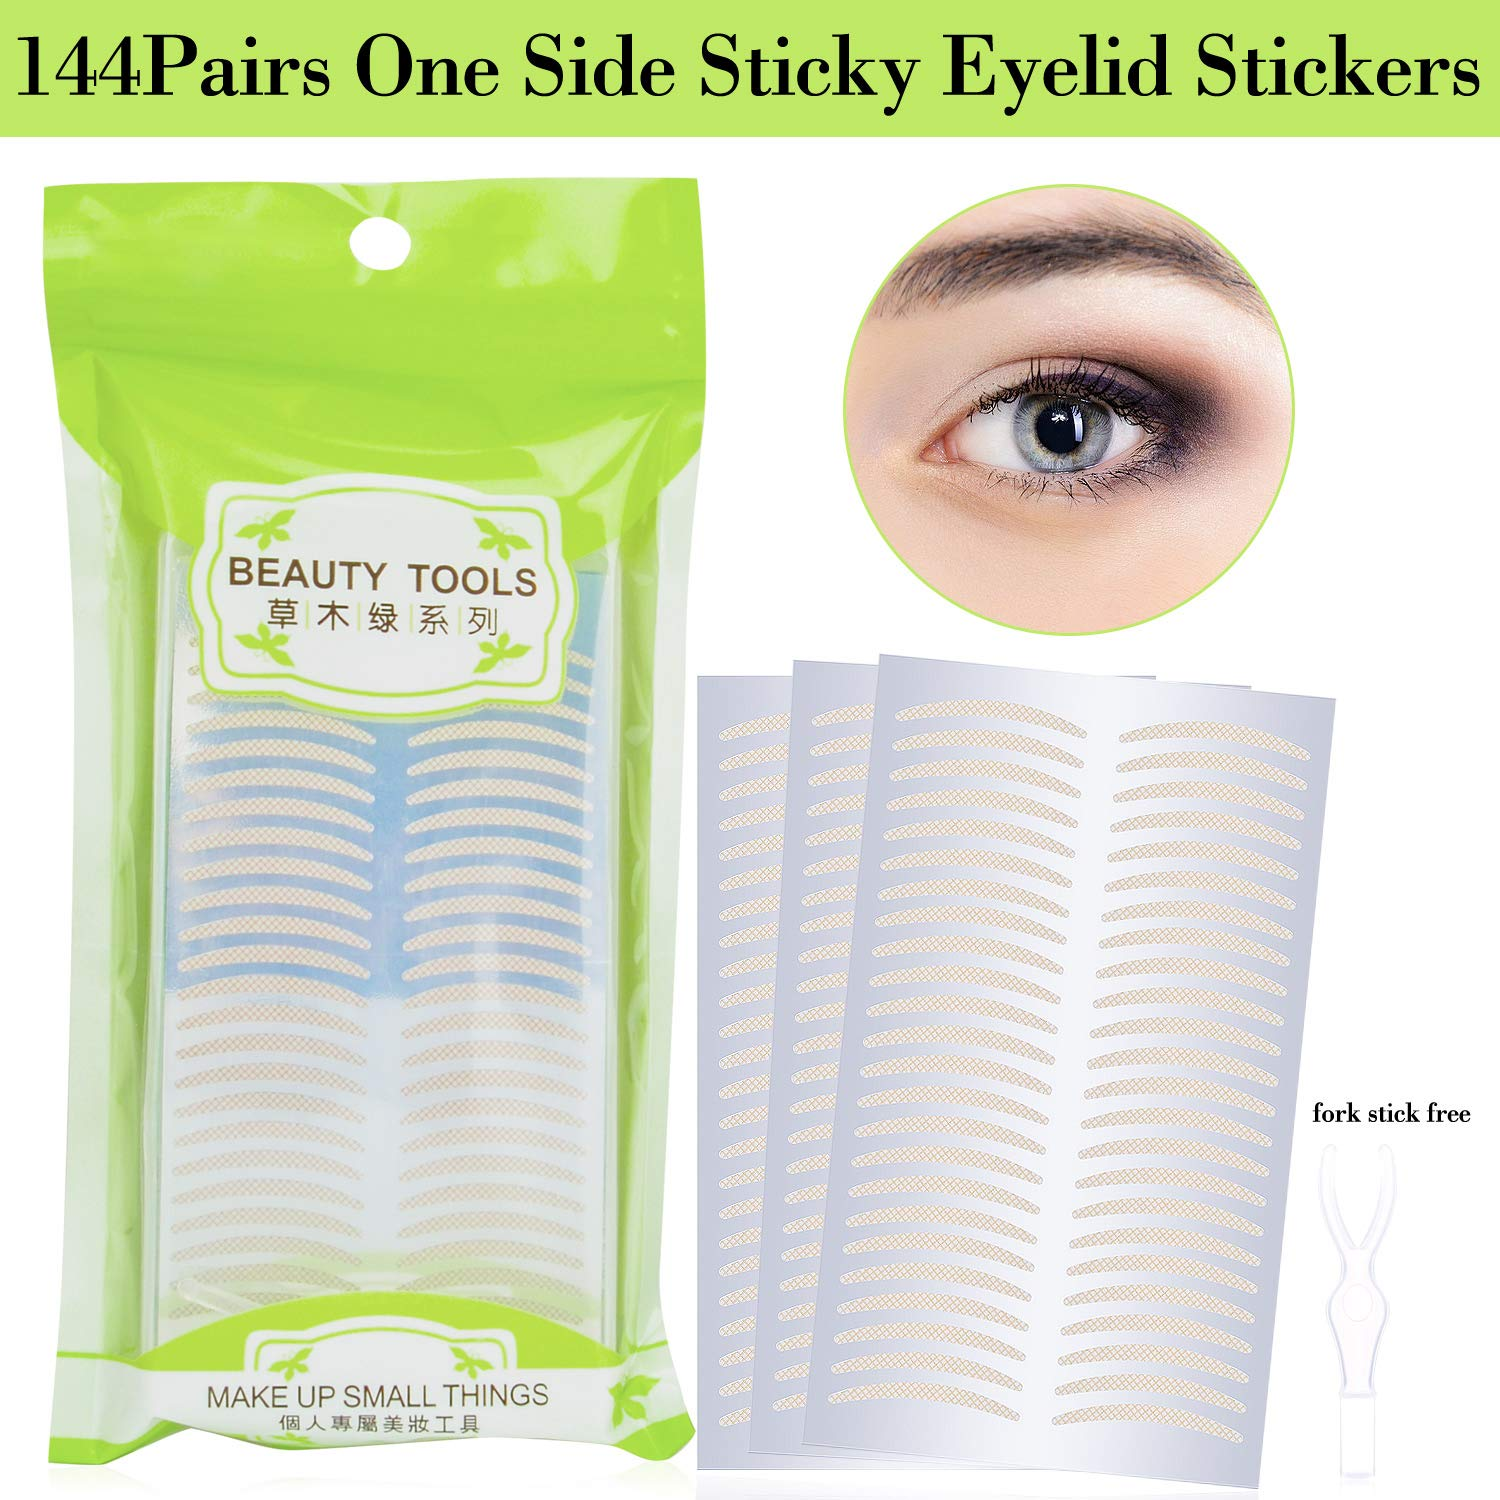 Breathable Single Side Sticky Double Eyelid Tape Paste Stickers Medical Grade Latex Free Eyelid Lift Tapes Perfect for Hooded, Droopy or Mono-eyelids (Slim) Pormasbenzer